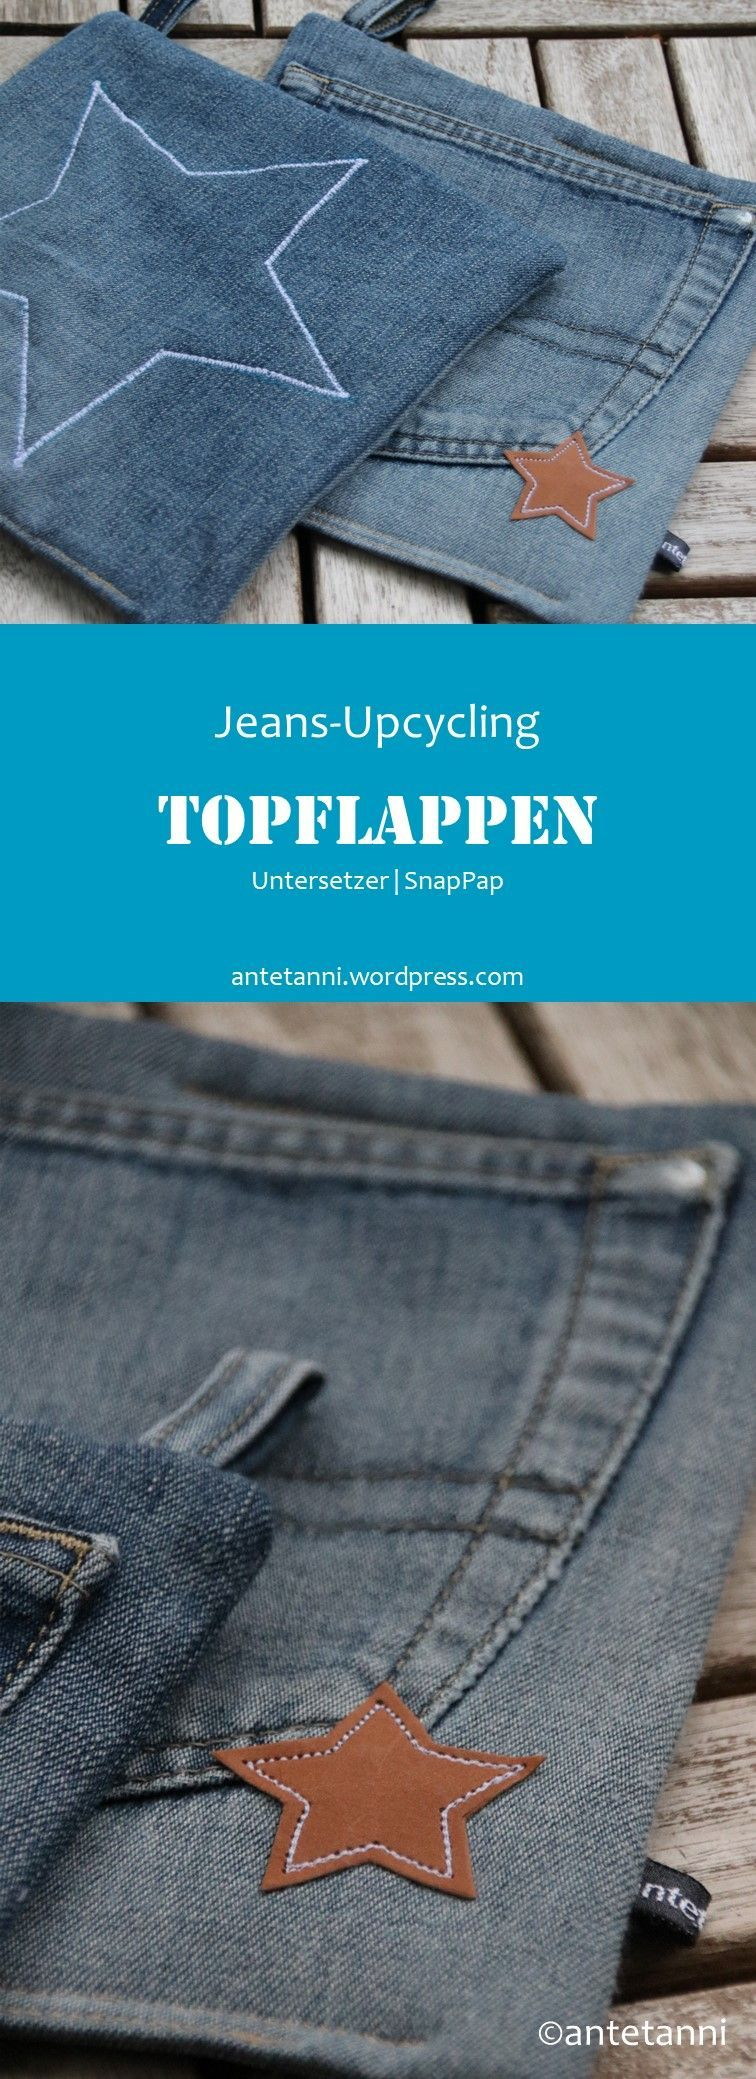 Photo of Topflappenuntersetzer Jeans Upcycling – mein Blog